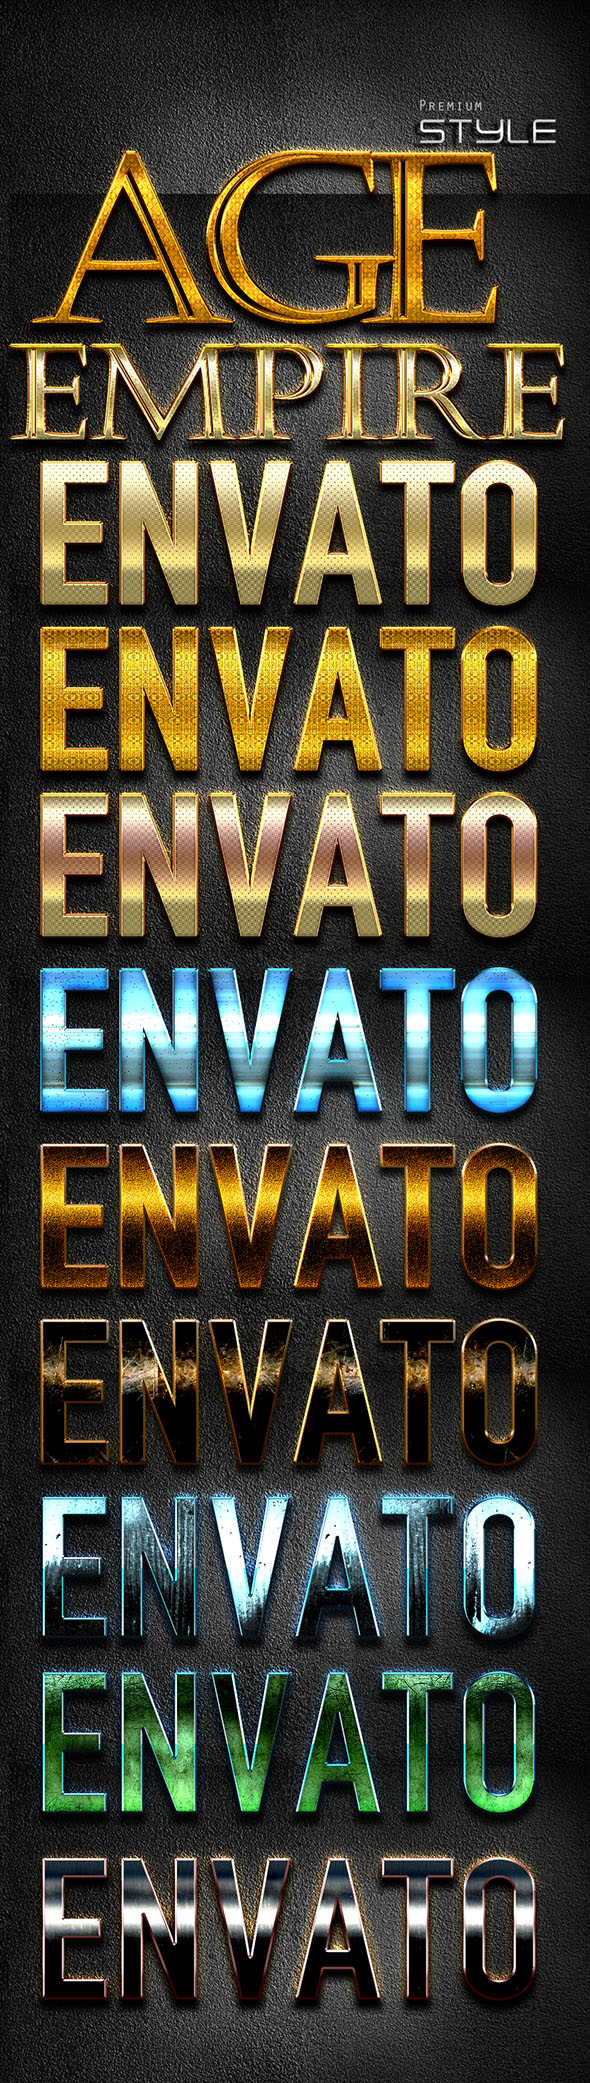 10 Shine Styles D170612 - Text Effects Styles